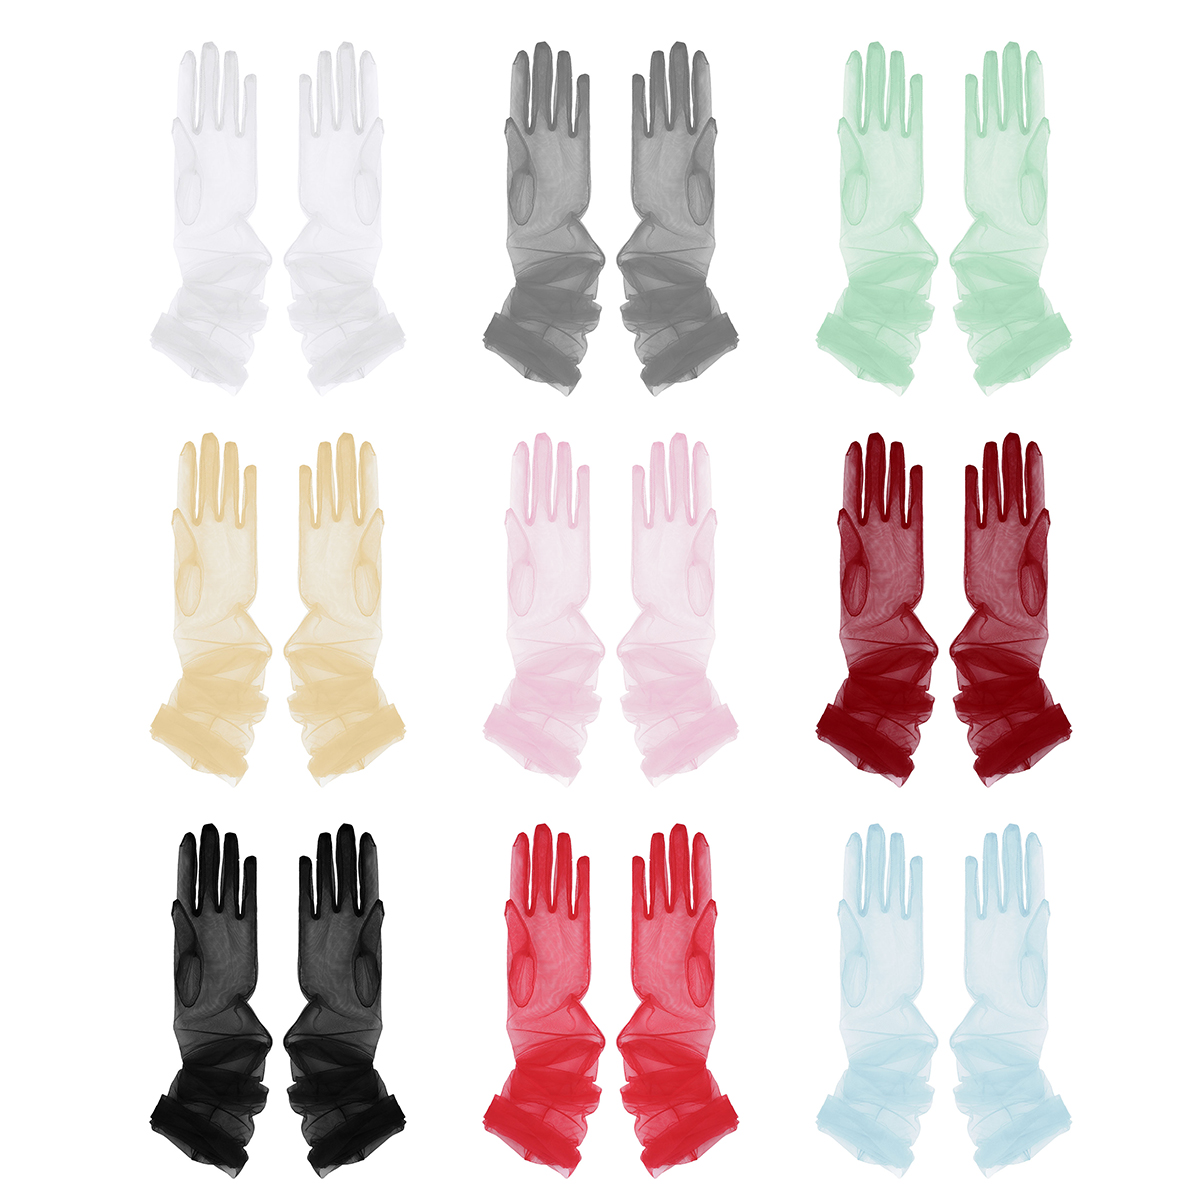 Long Gloves Sheer Tulle Gloves Ultra Thin Ultra Gloves Elbow Long Gloves Photo Shooting Accessory Halloween Gloves For Women